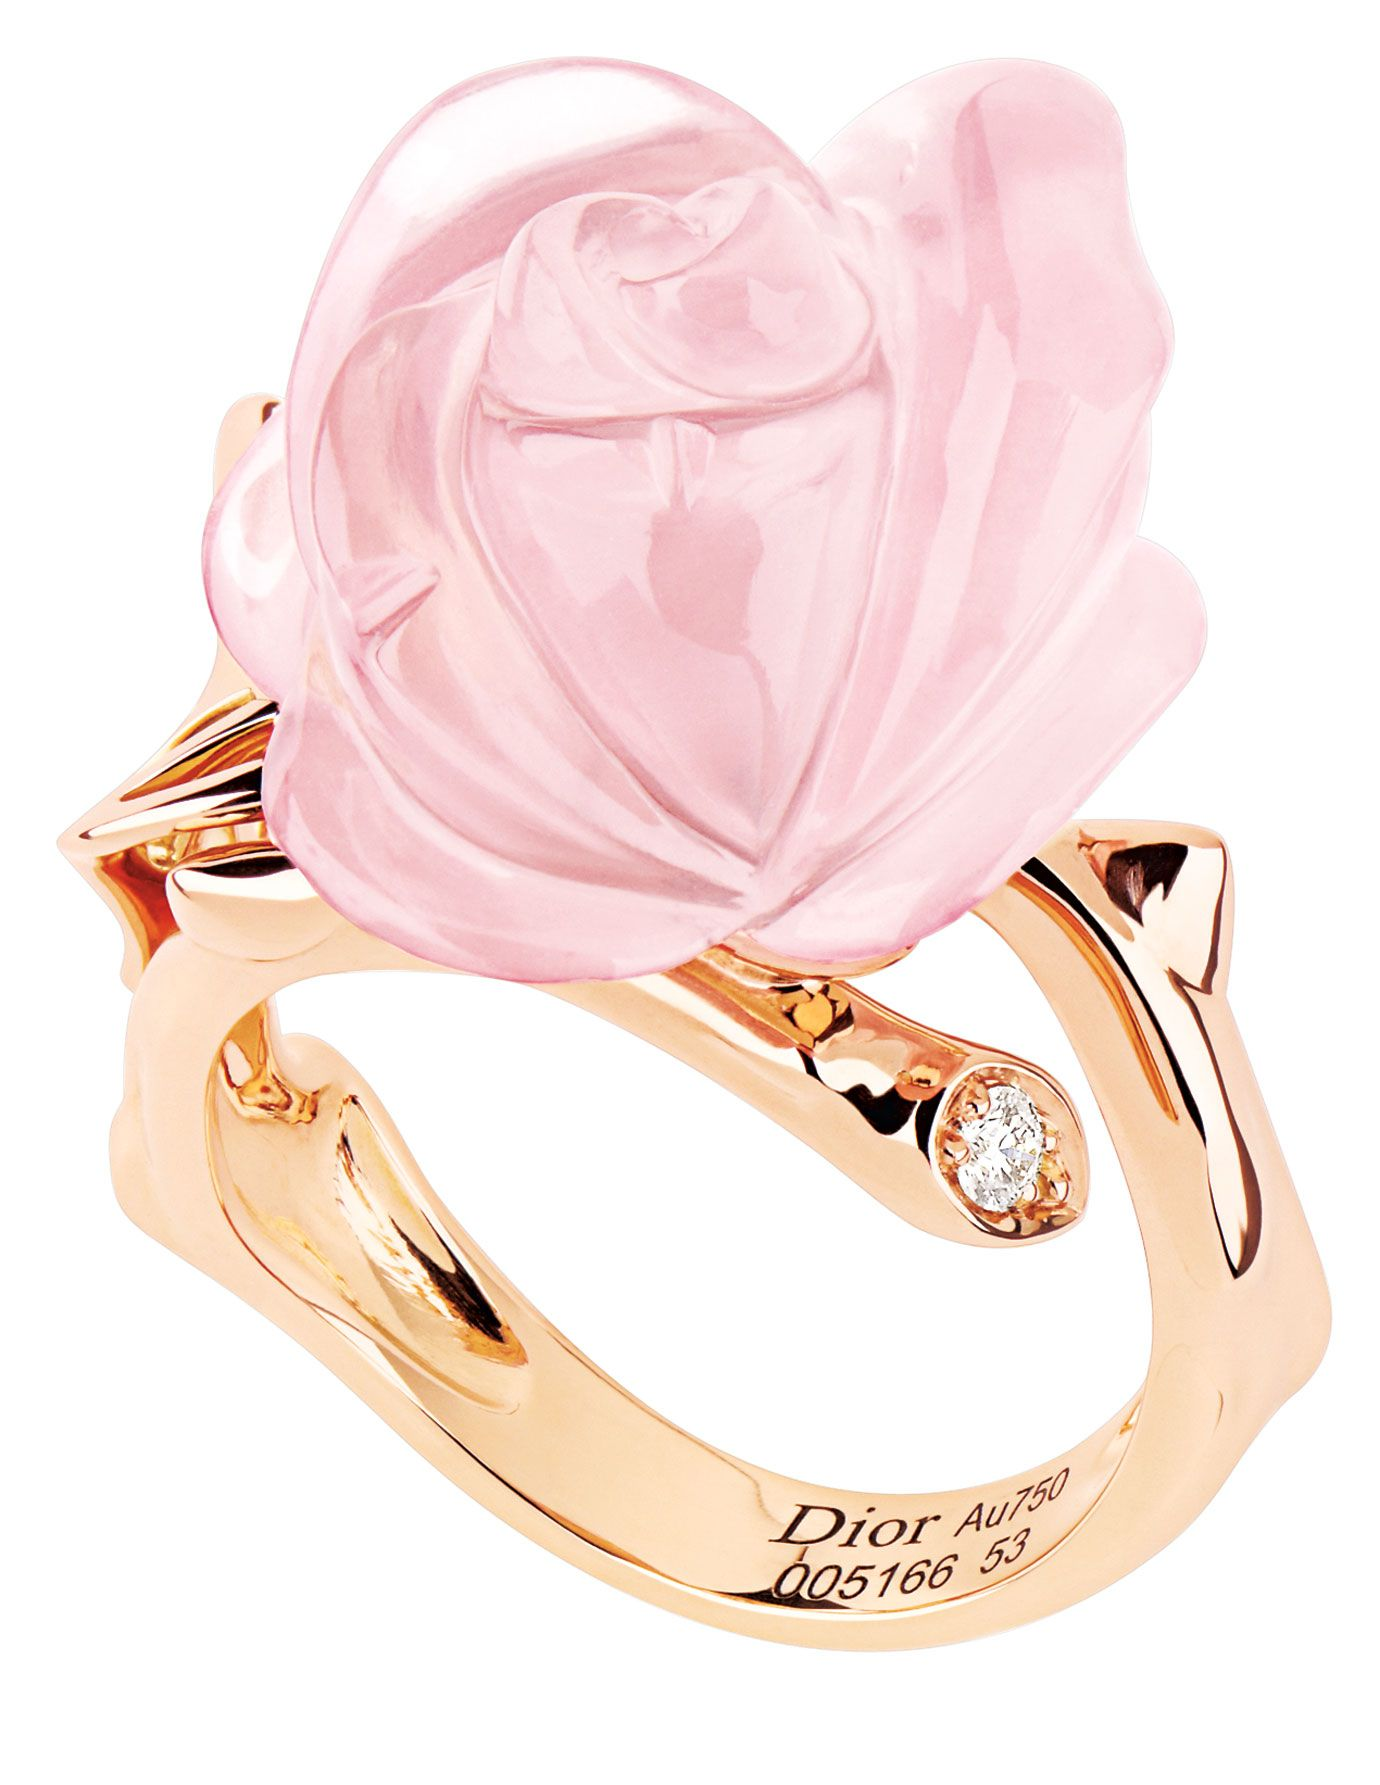 Stone Forms | Pinterest | Pink quartz, Christian dior and Dior